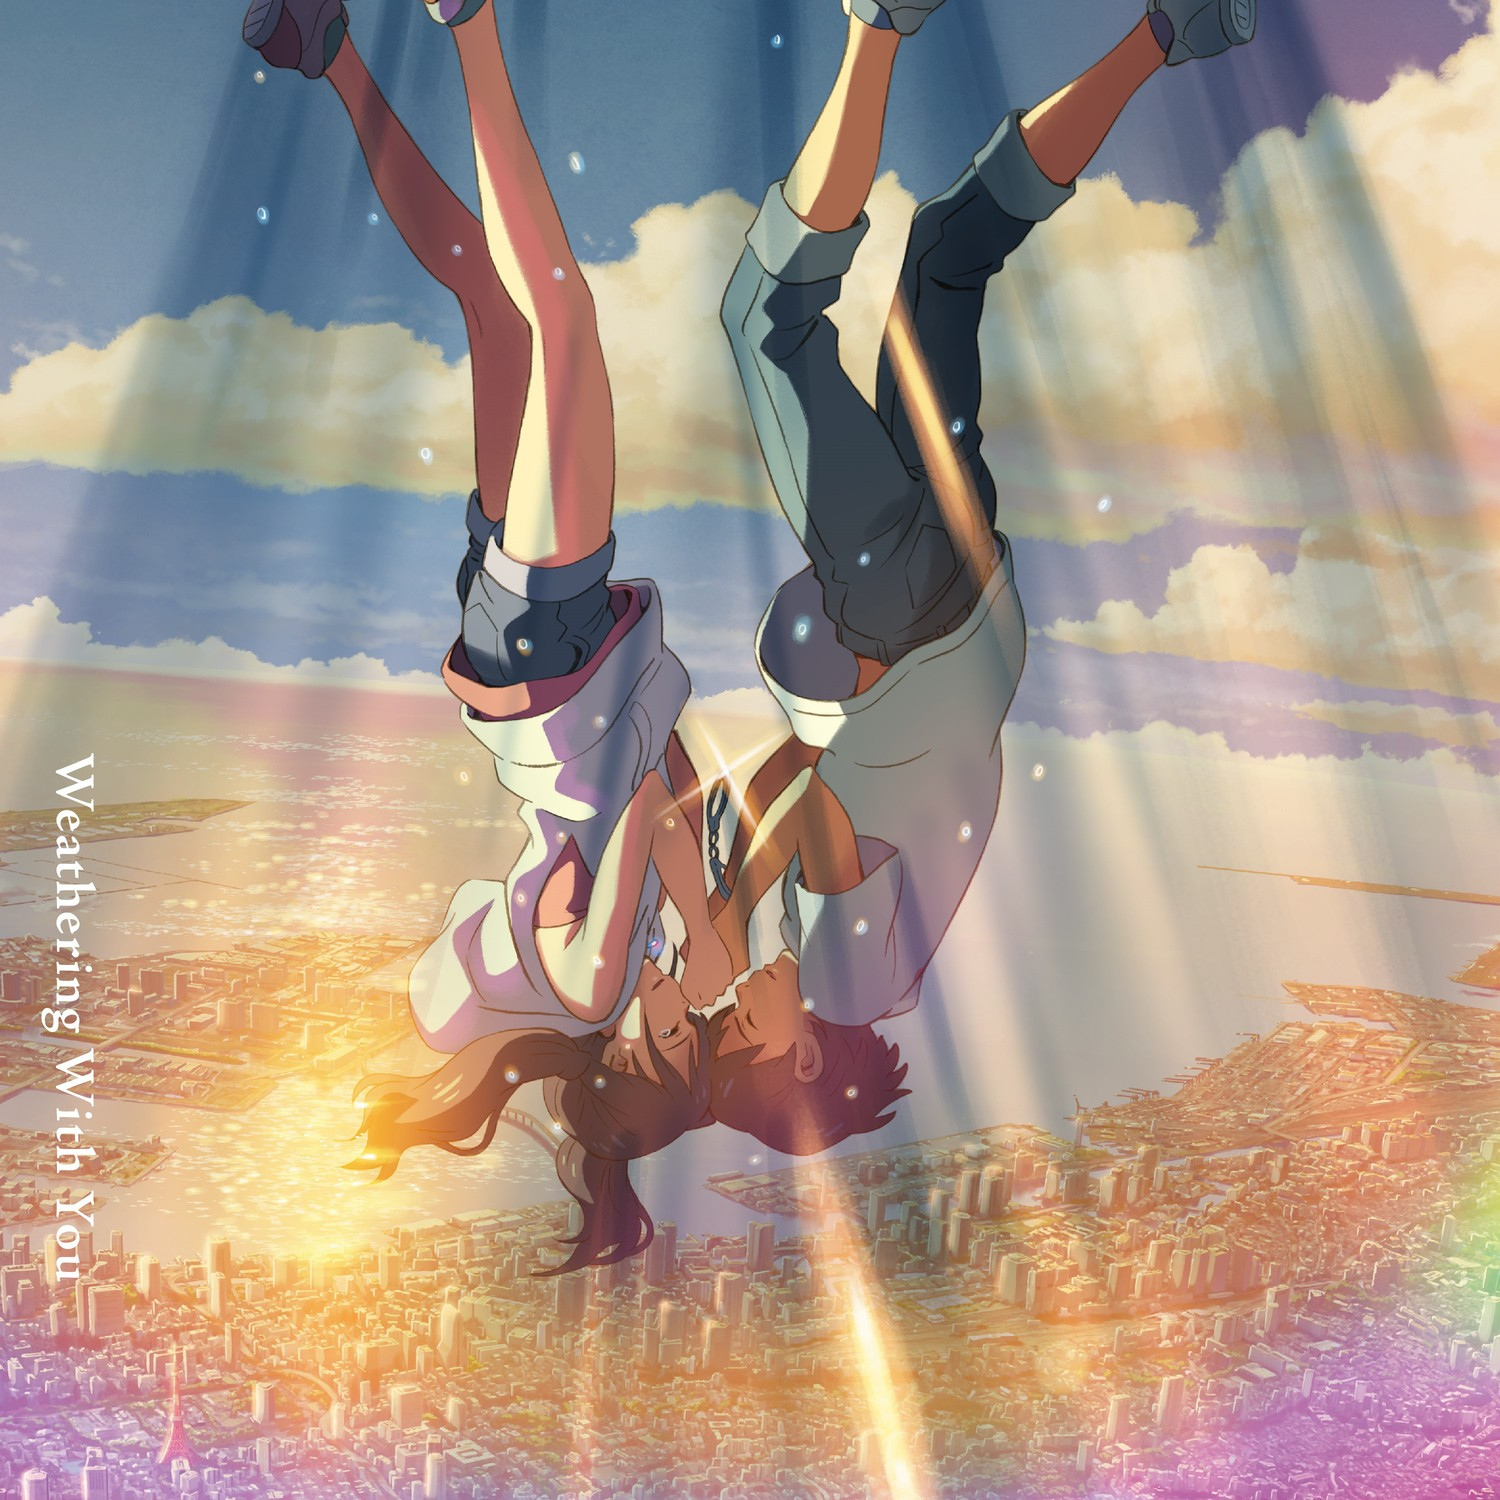 Download RADWIMPS Weathering With You Complete version